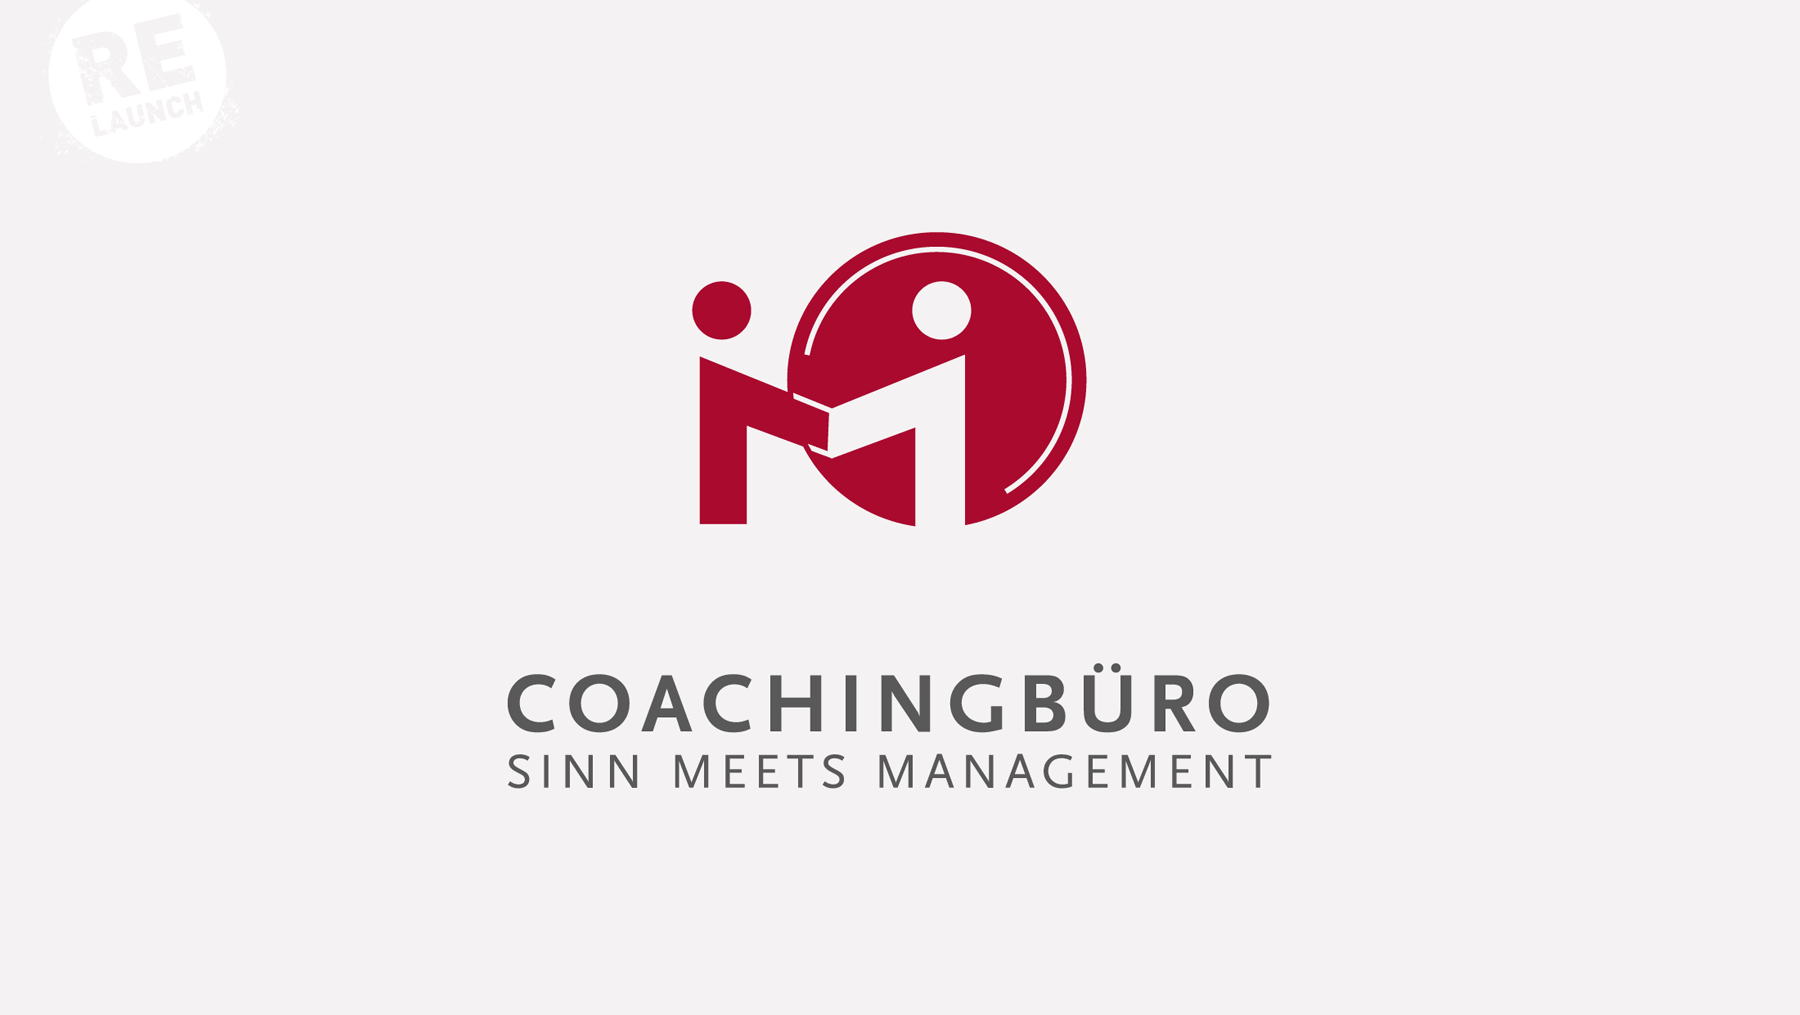 Logo - Coachingbuero Sinn meets Management